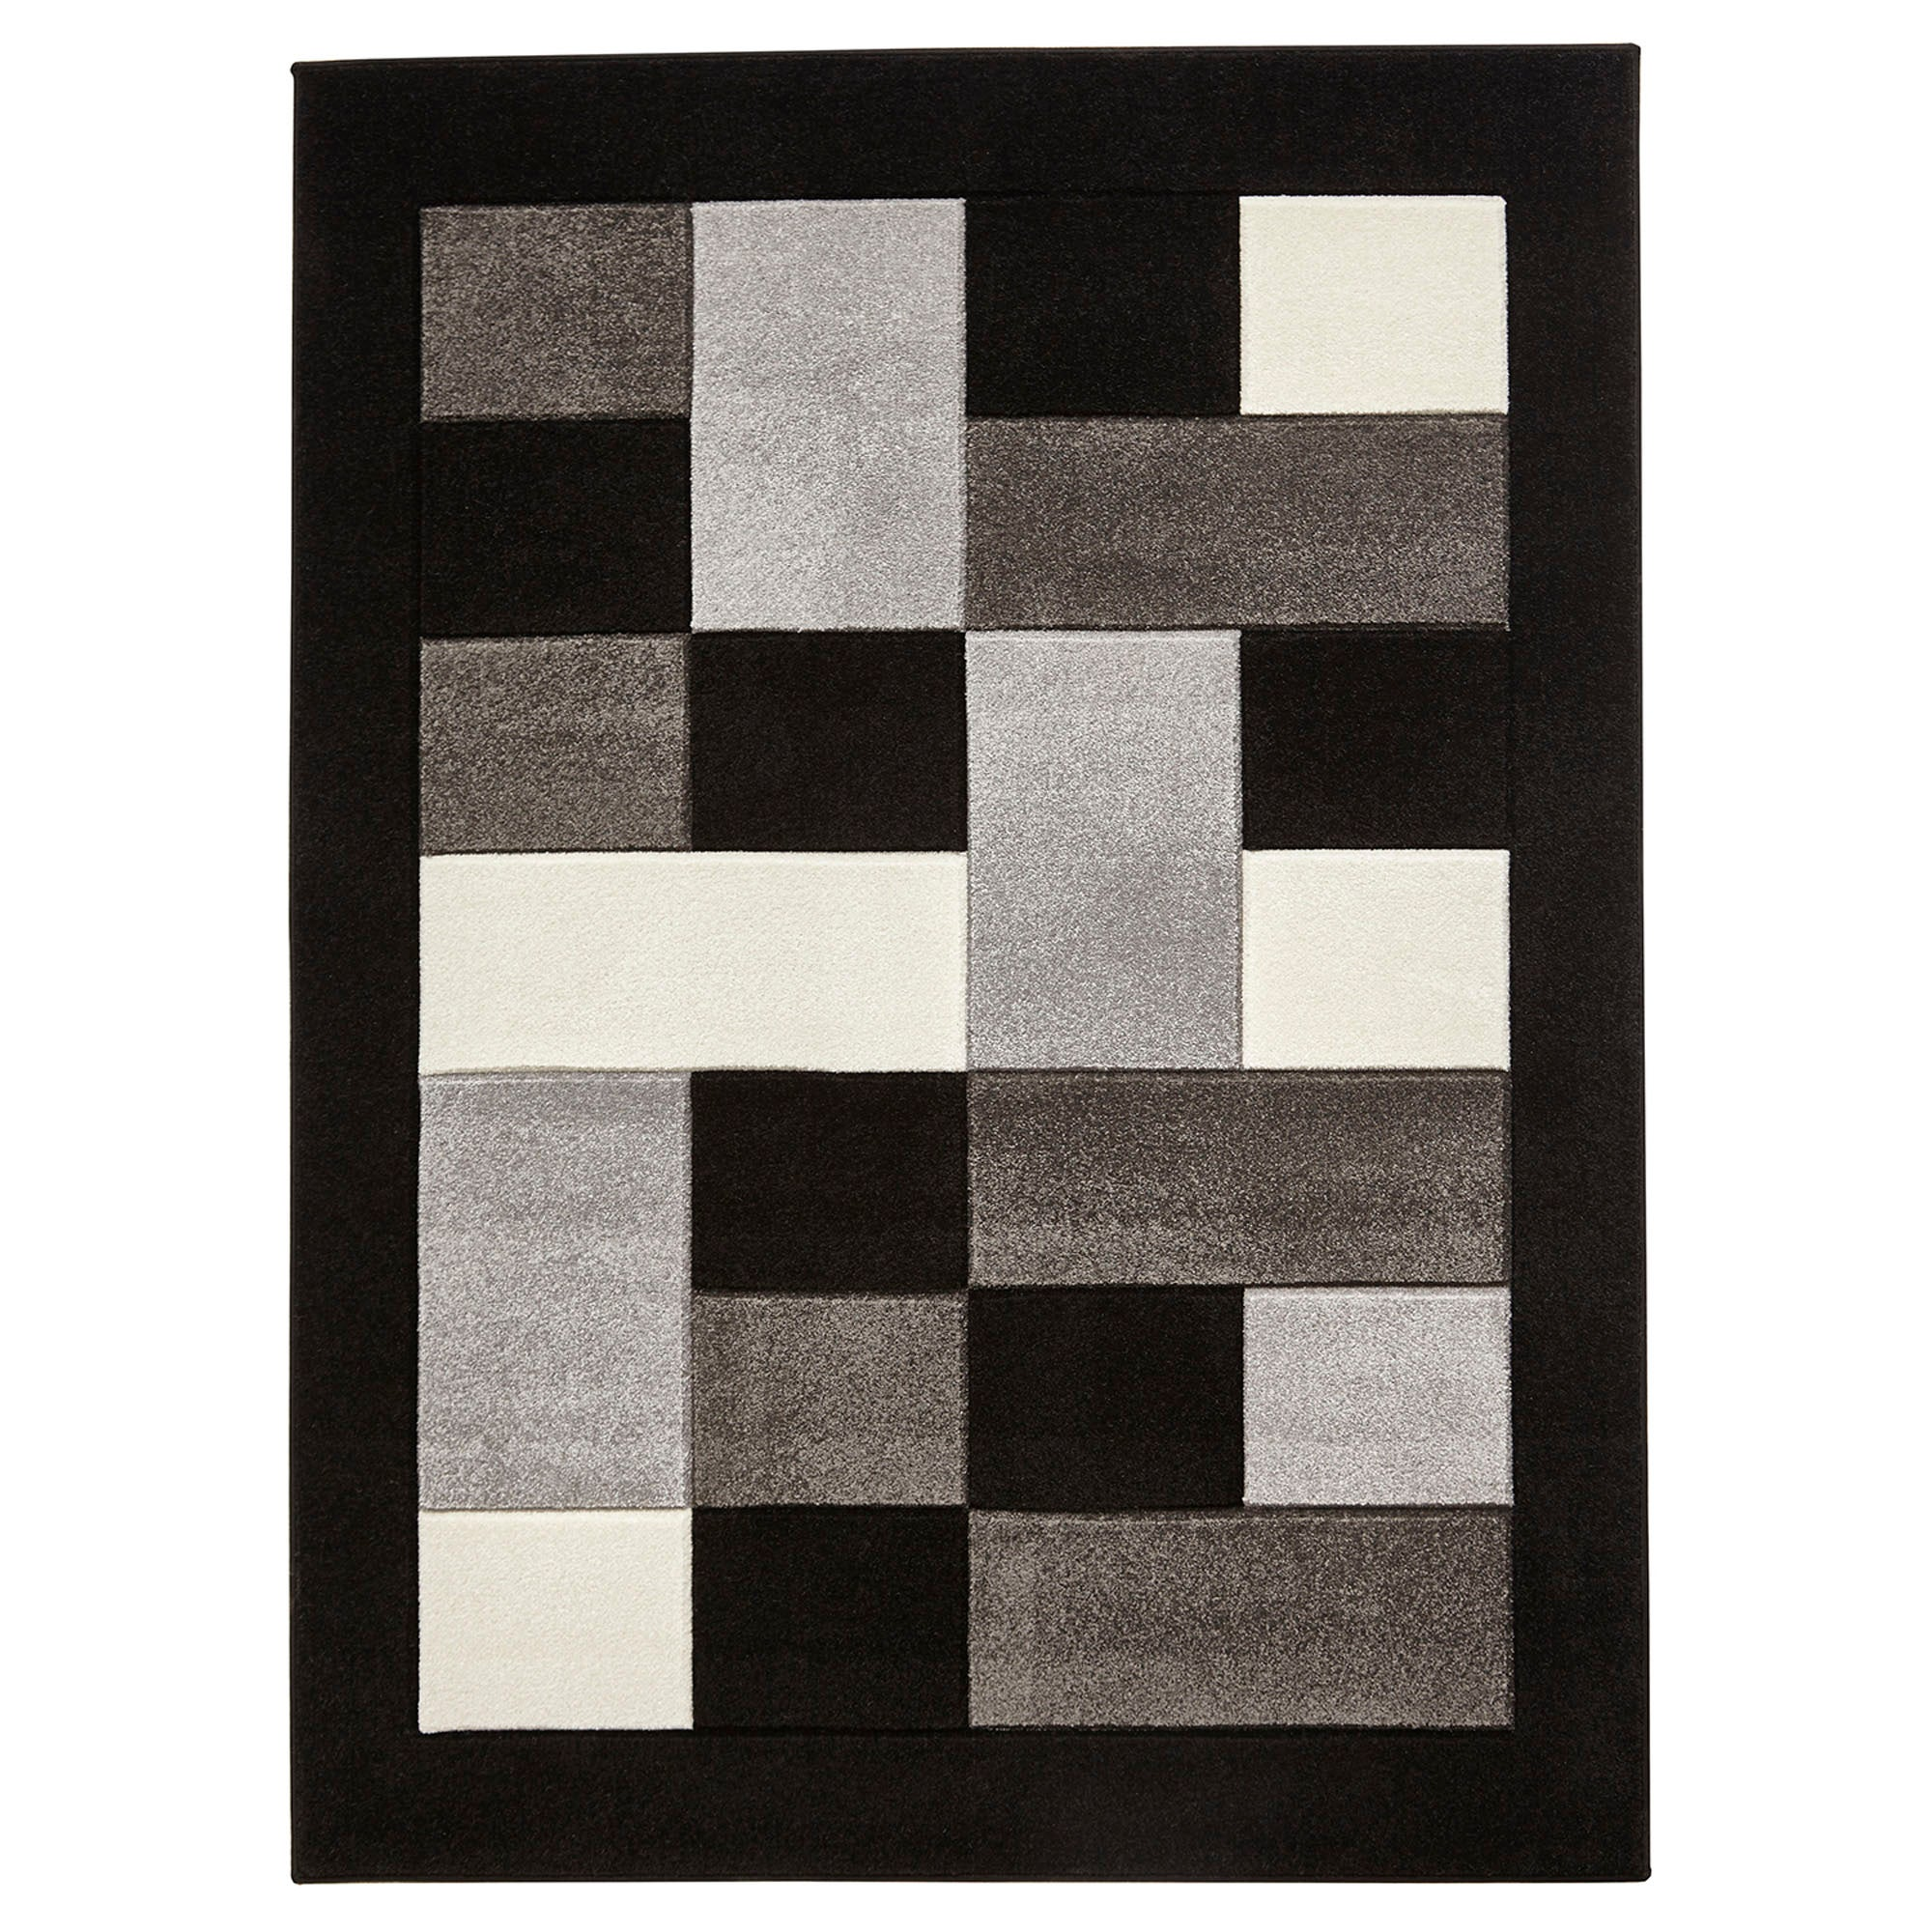 Photo of Black and grey block matrix mt04 rug grey